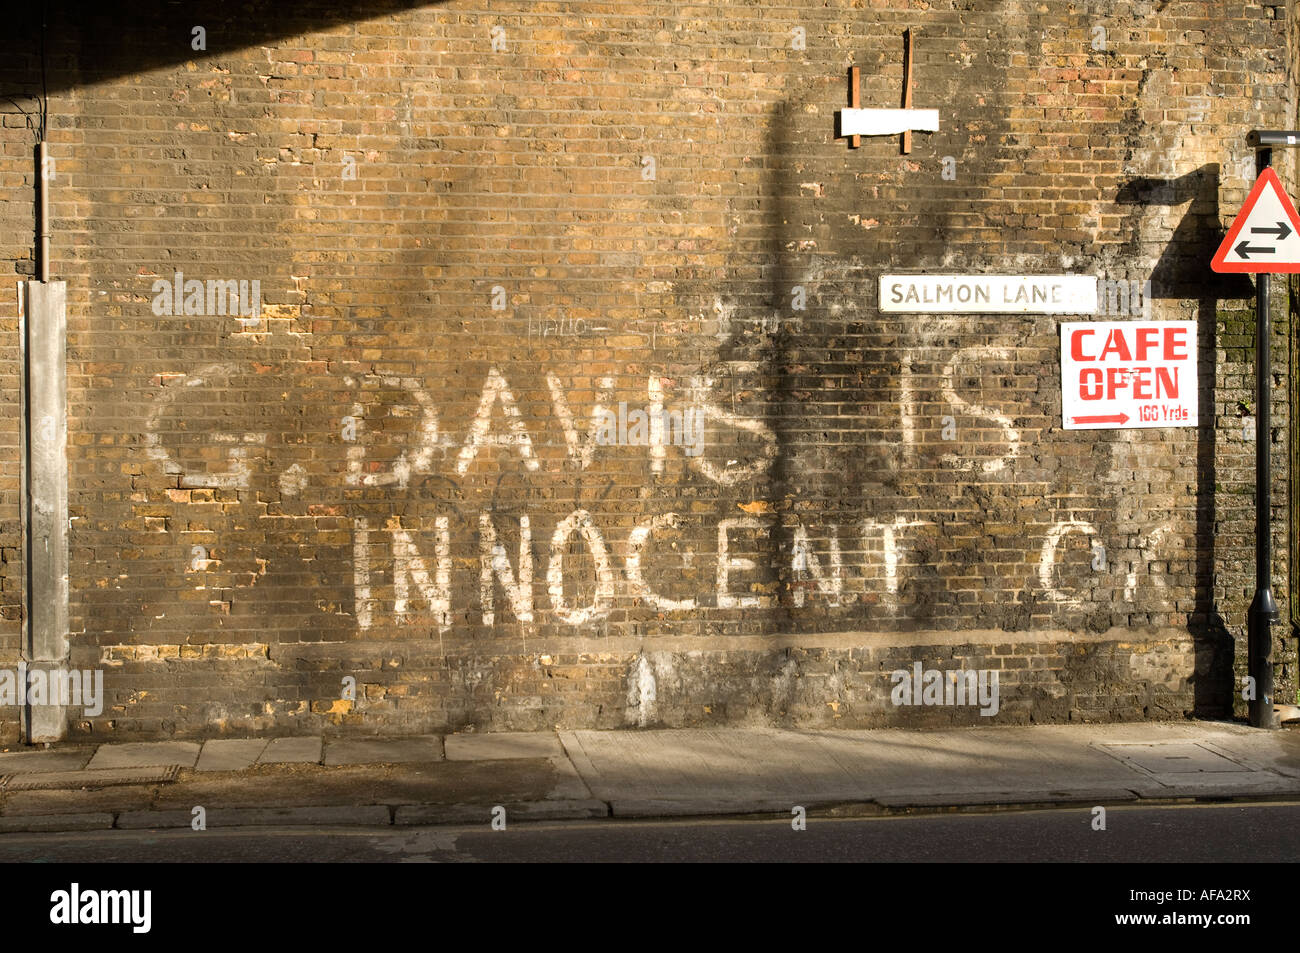 Graffiti wall reading - Graffiti Reading G Davis Is Innocent Referring To Gaoled East End Armed Robber Salmon Lane East London